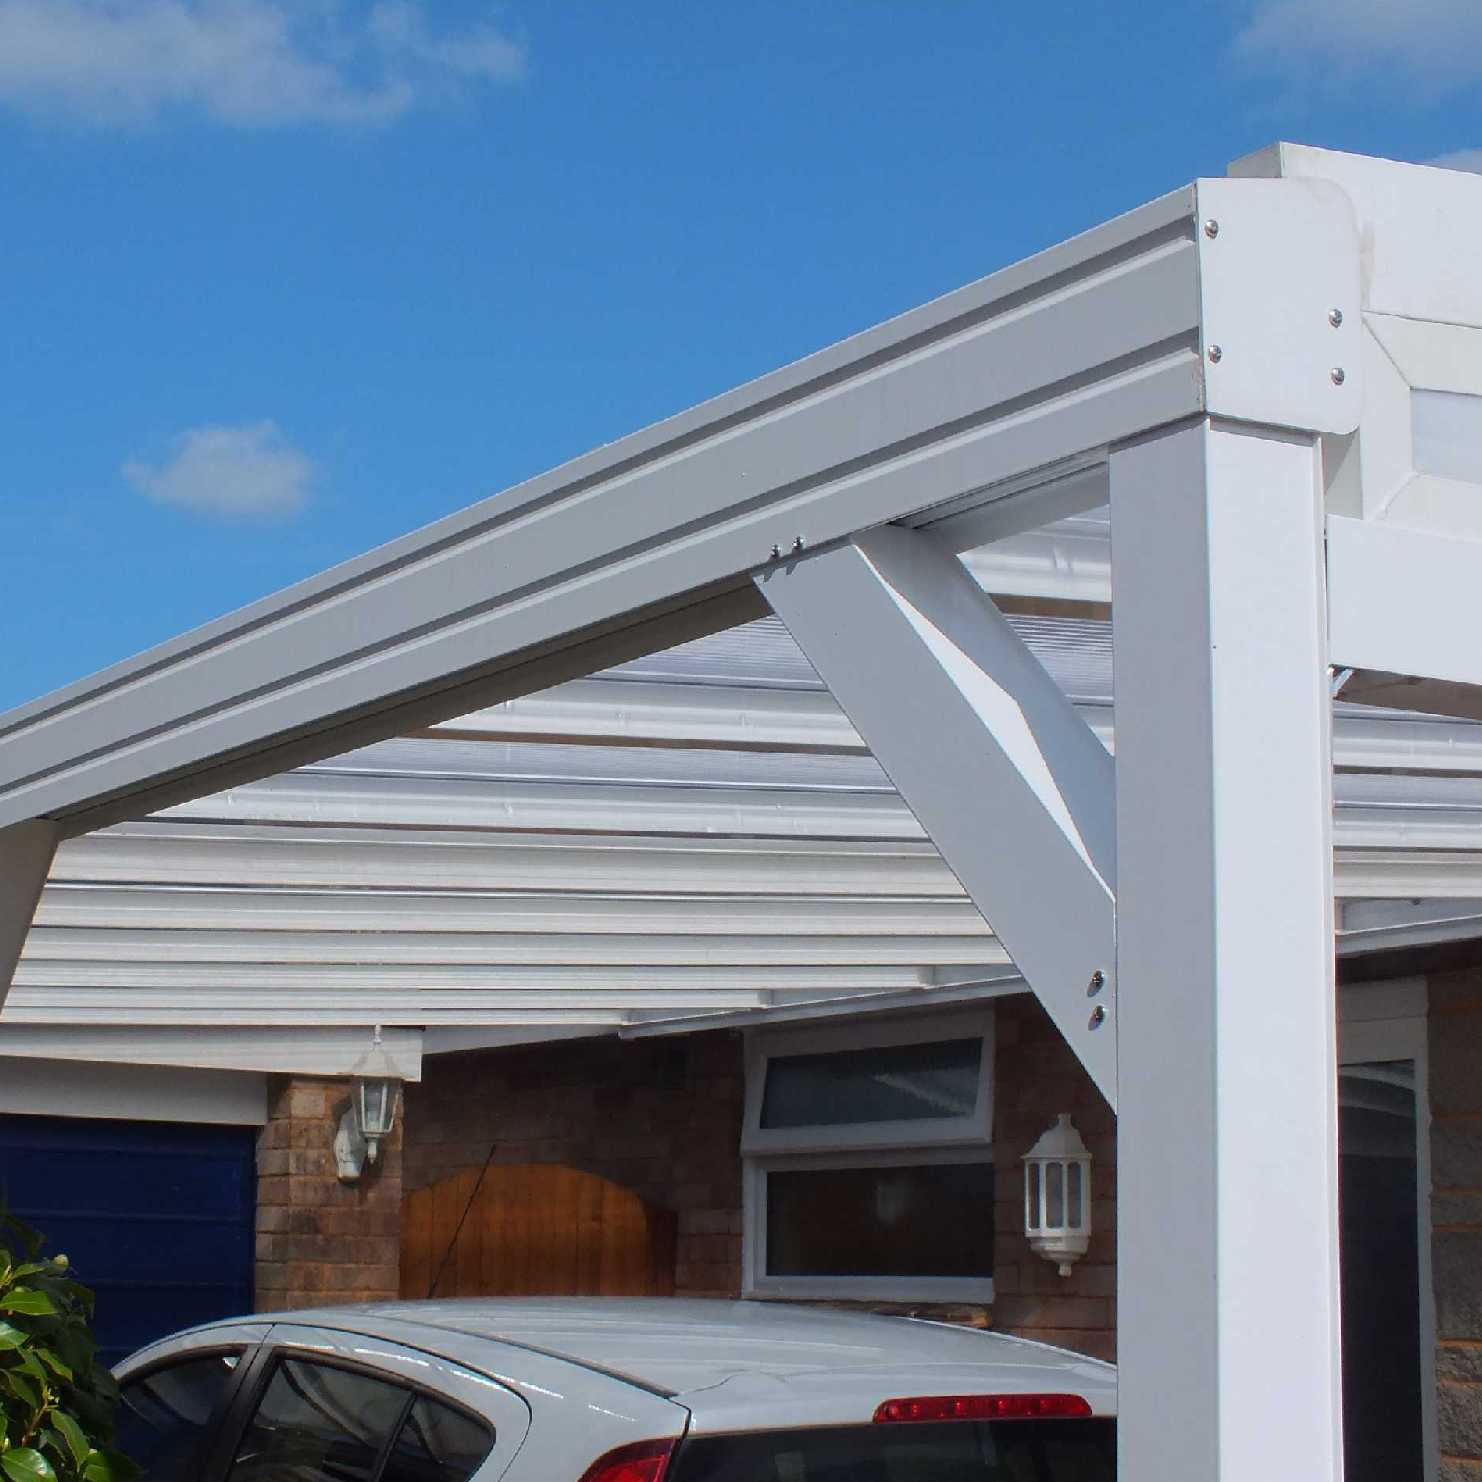 Buy Omega Smart White Lean-To Canopy with 16mm Polycarbonate Glazing - 8.4m (W) x 1.5m (P), (4) Supporting Posts online today